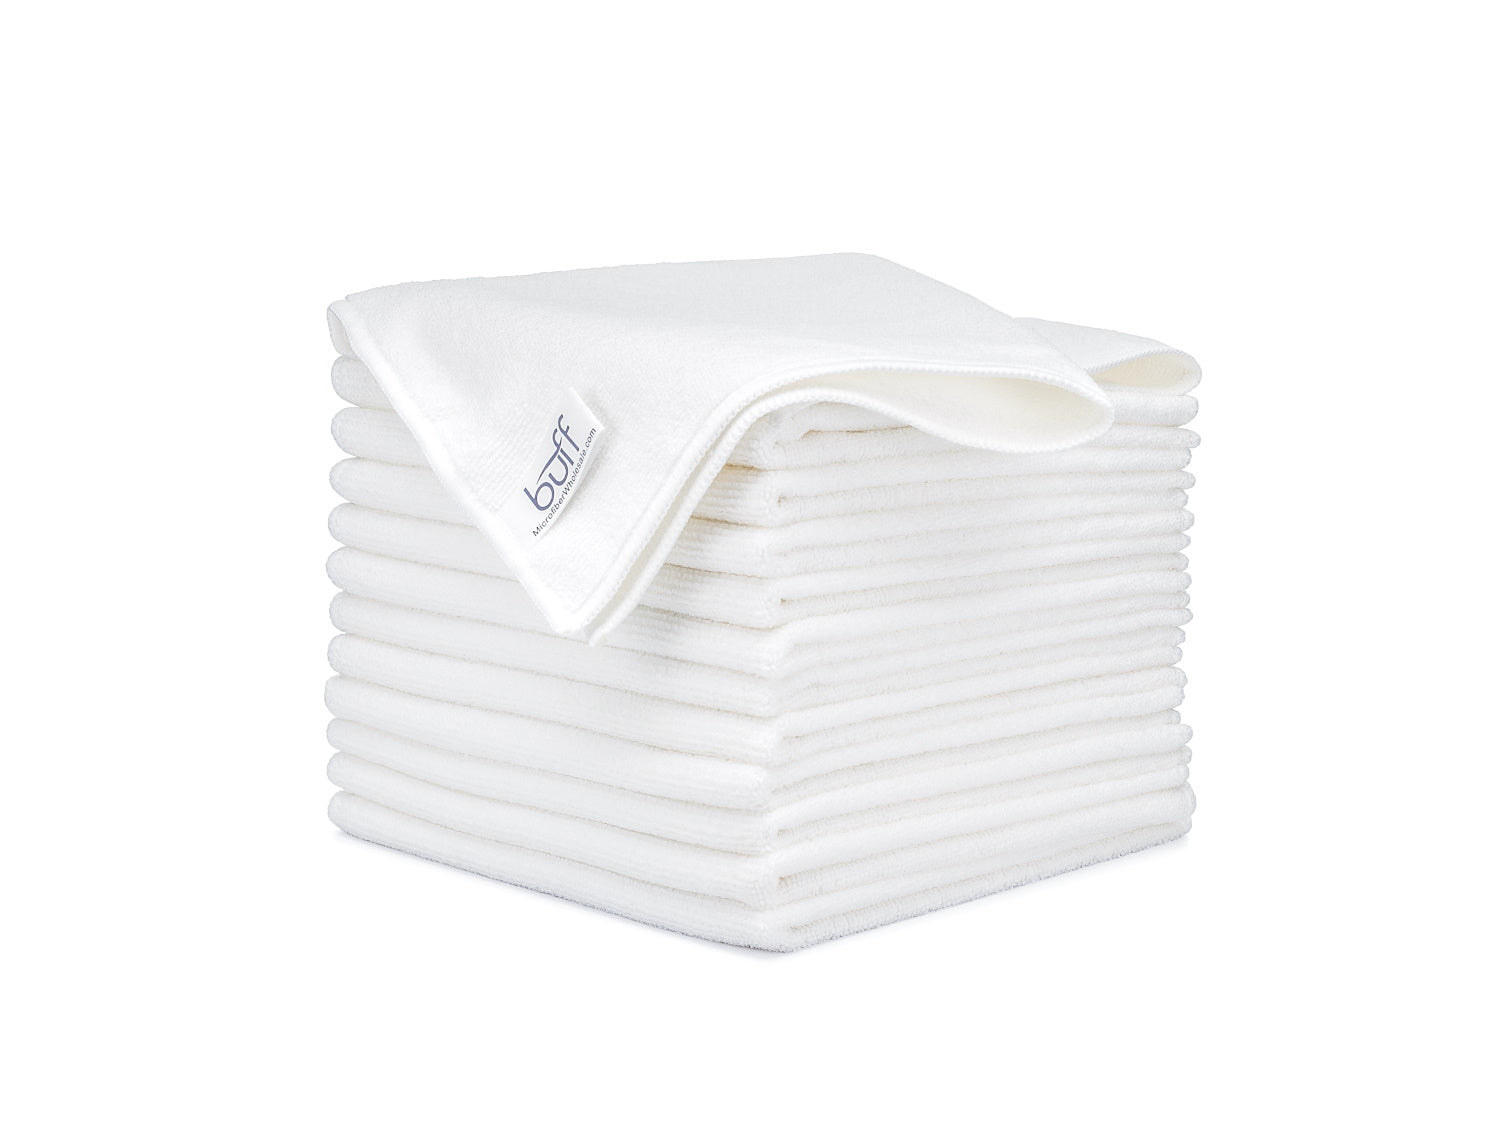 White Microfiber Towels 12 Pack